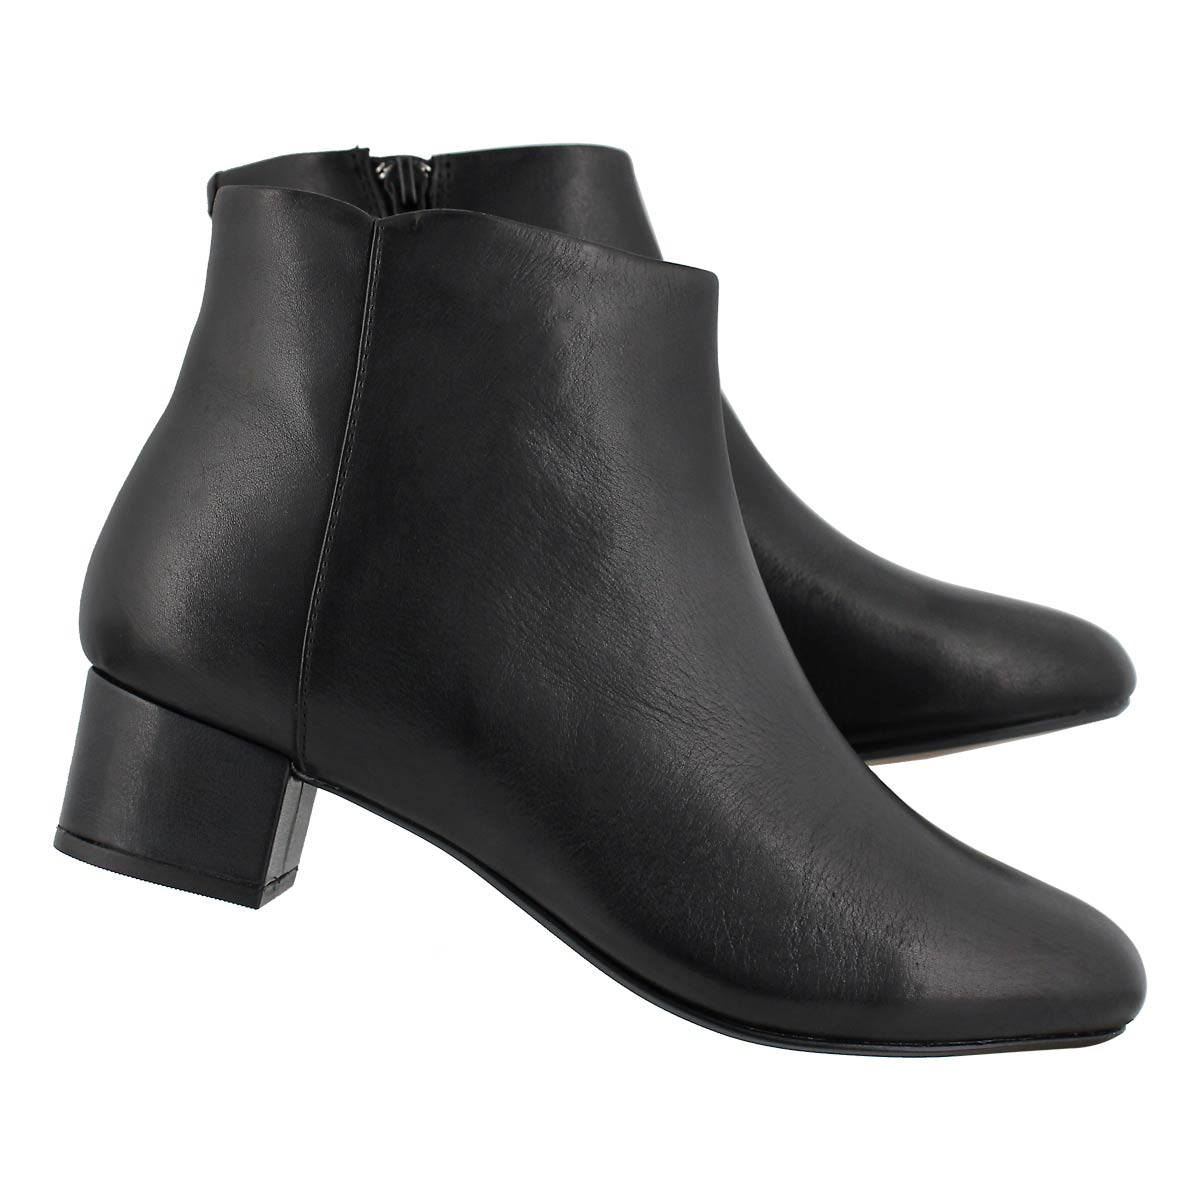 Lds Chartli Lilac blk ankle boot- wide